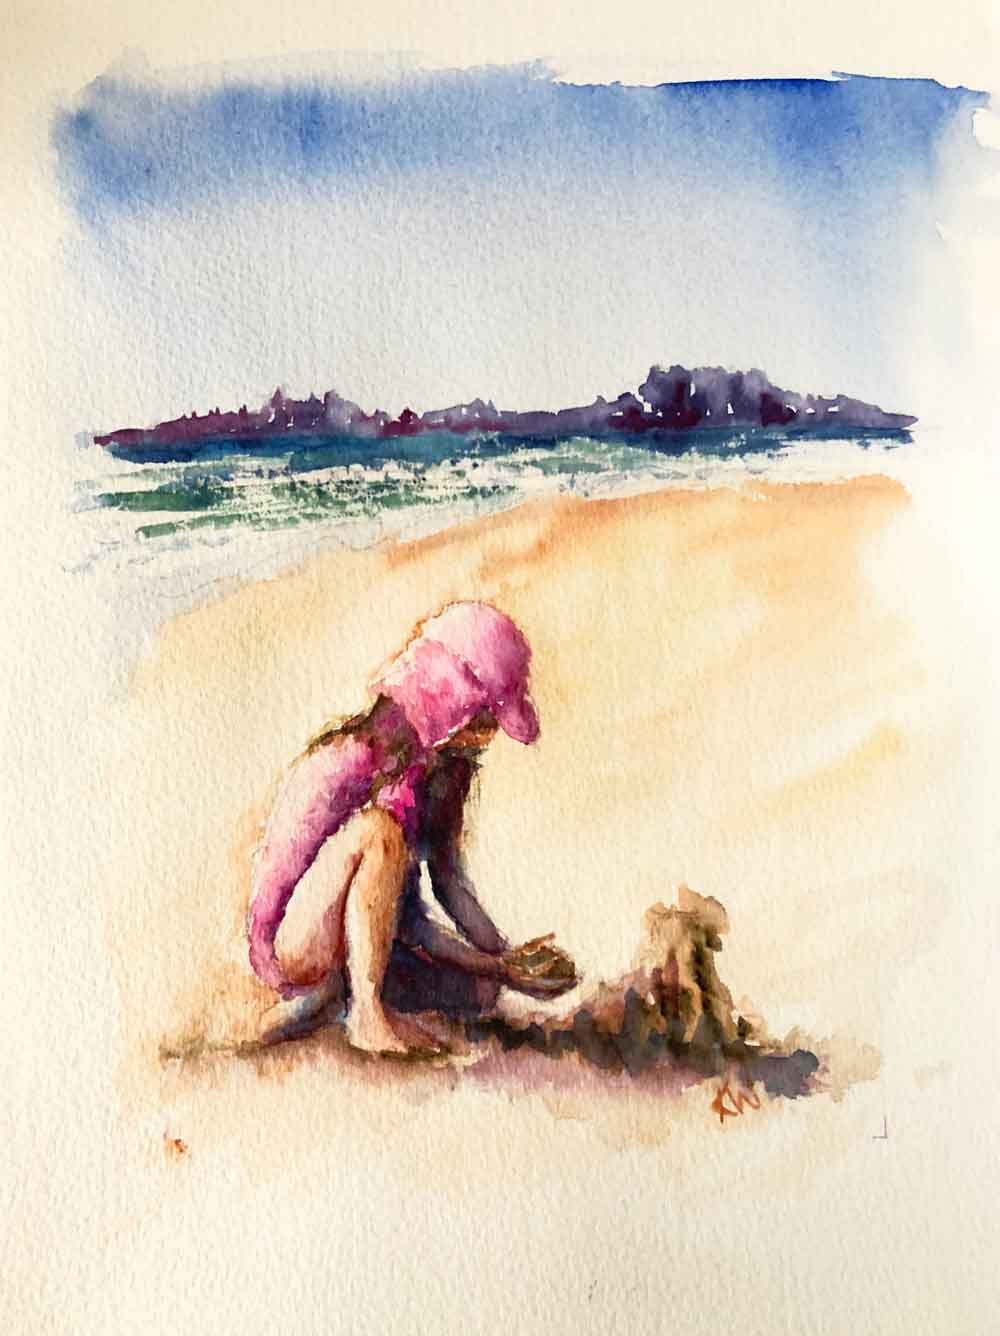 Beach Holiday no 1 - A Girl and Her Sandcastle (Watercolour on paper 8 x 11 inches